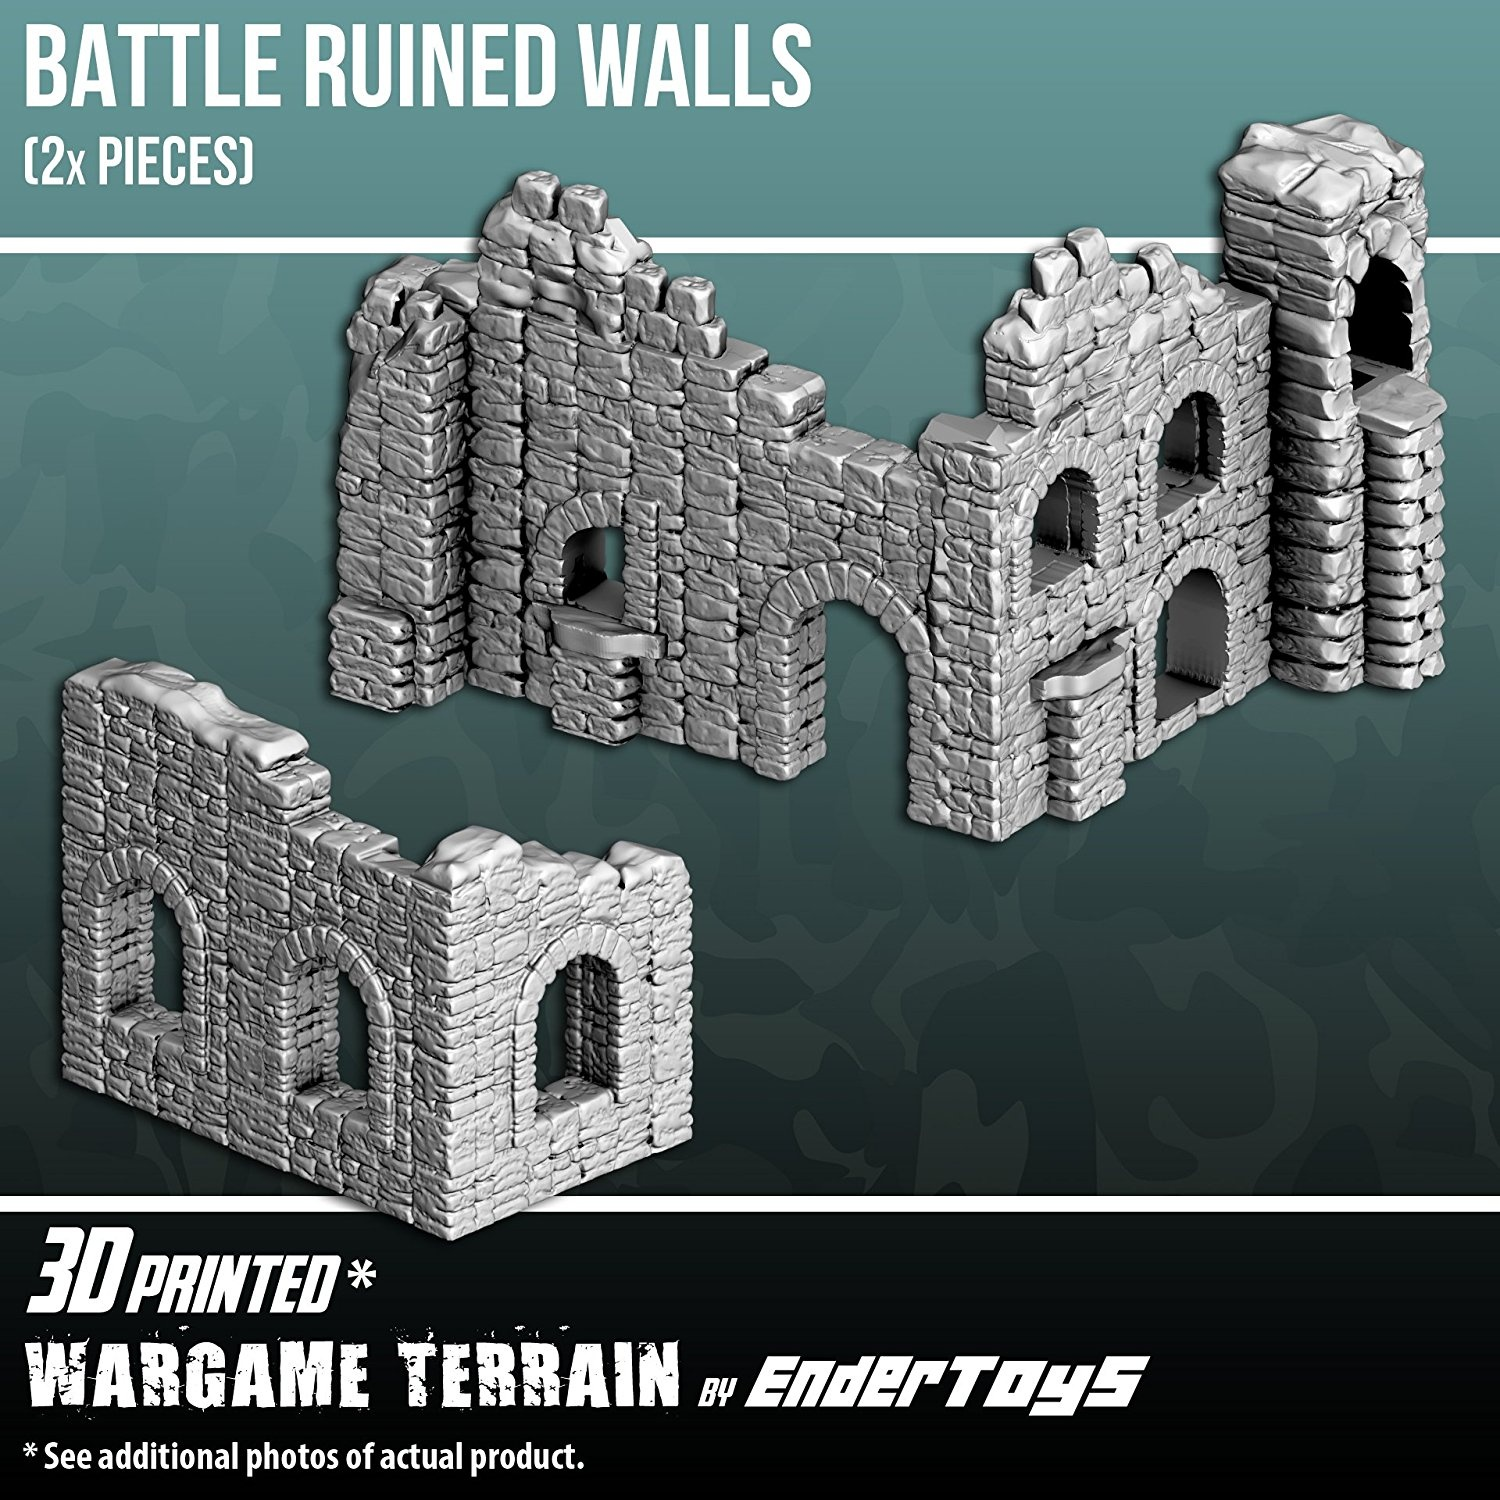 Battle Ruined Walls, Terrain Scenery for Tabletop 28mm Miniatures Wargame,  3D Printed and Paintable, EnderToys